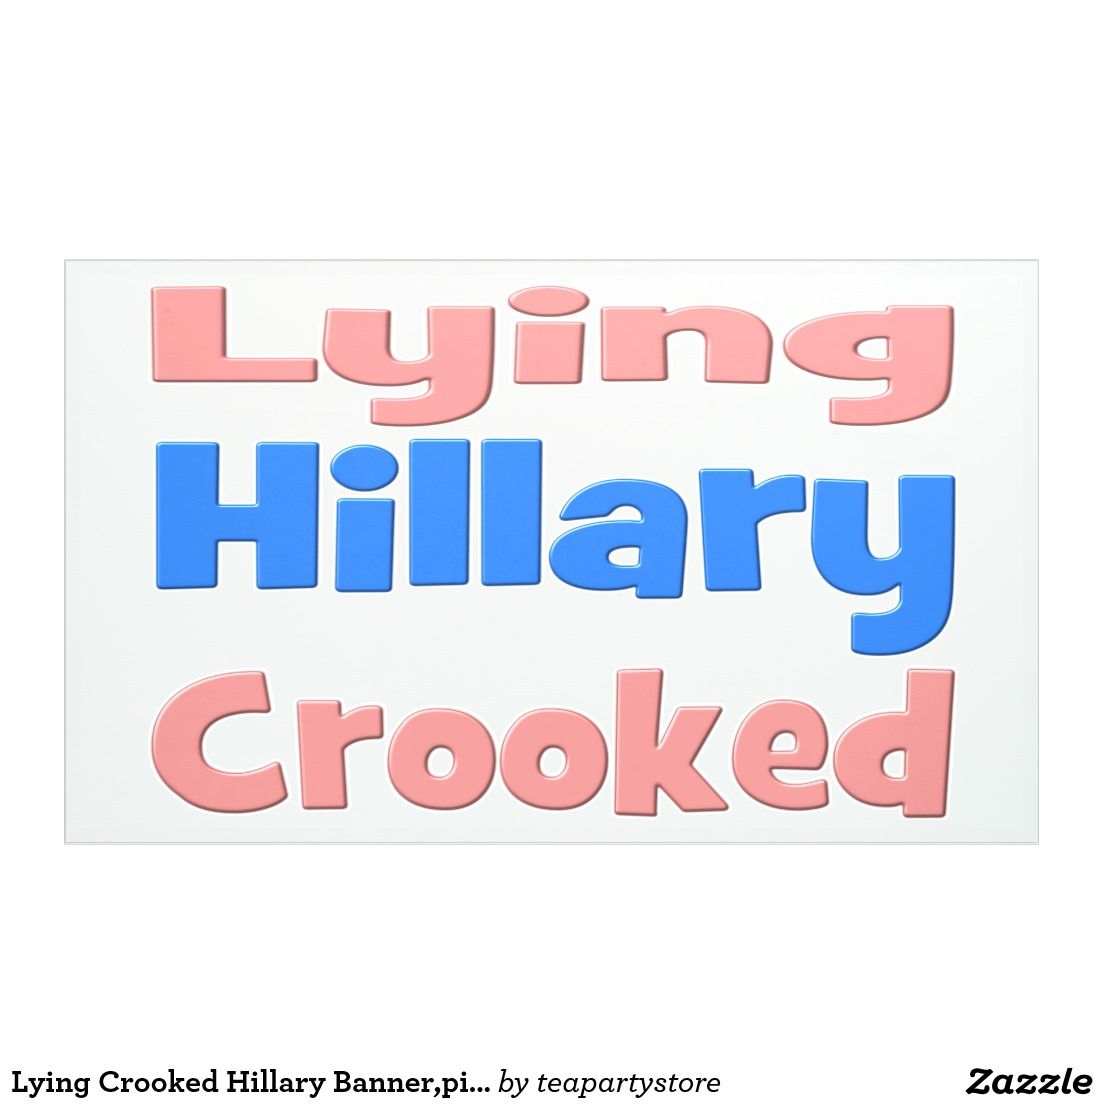 Lying Crooked Hillary Banner,pink & blue Banner